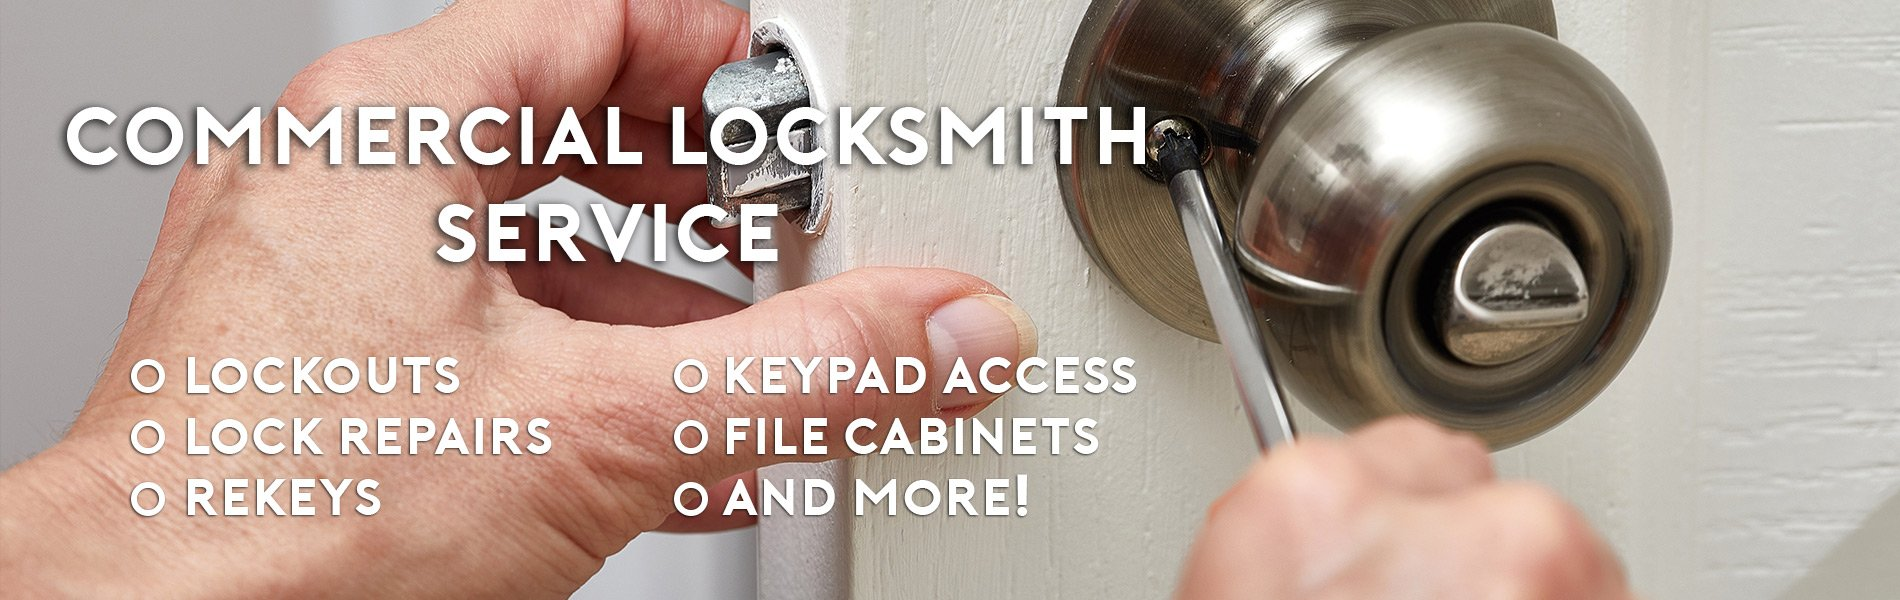 City Locksmith Shop Memphis, TN 901-755-1043